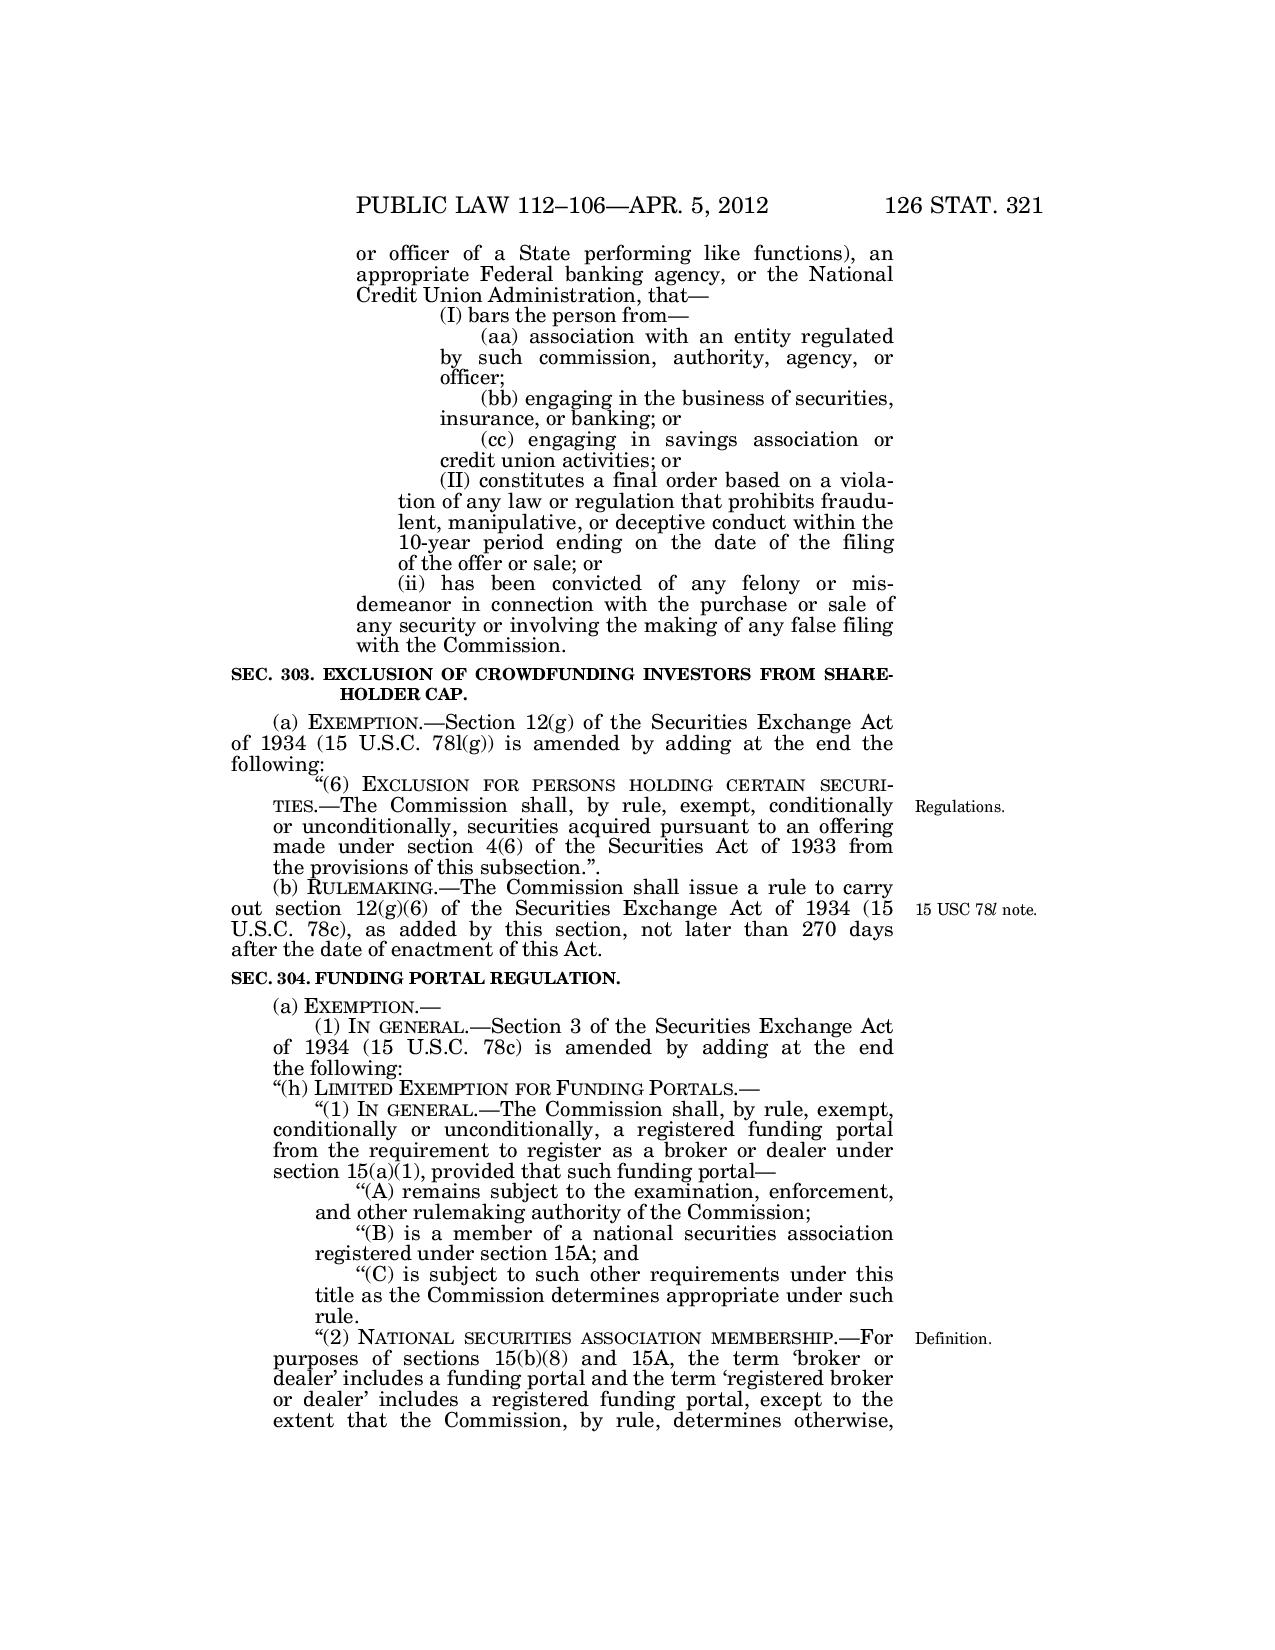 331653864-The-Jumpstart-Our-Business-Startups-Act-JOBS-Act-April-5-of-2012-page-017.jpg